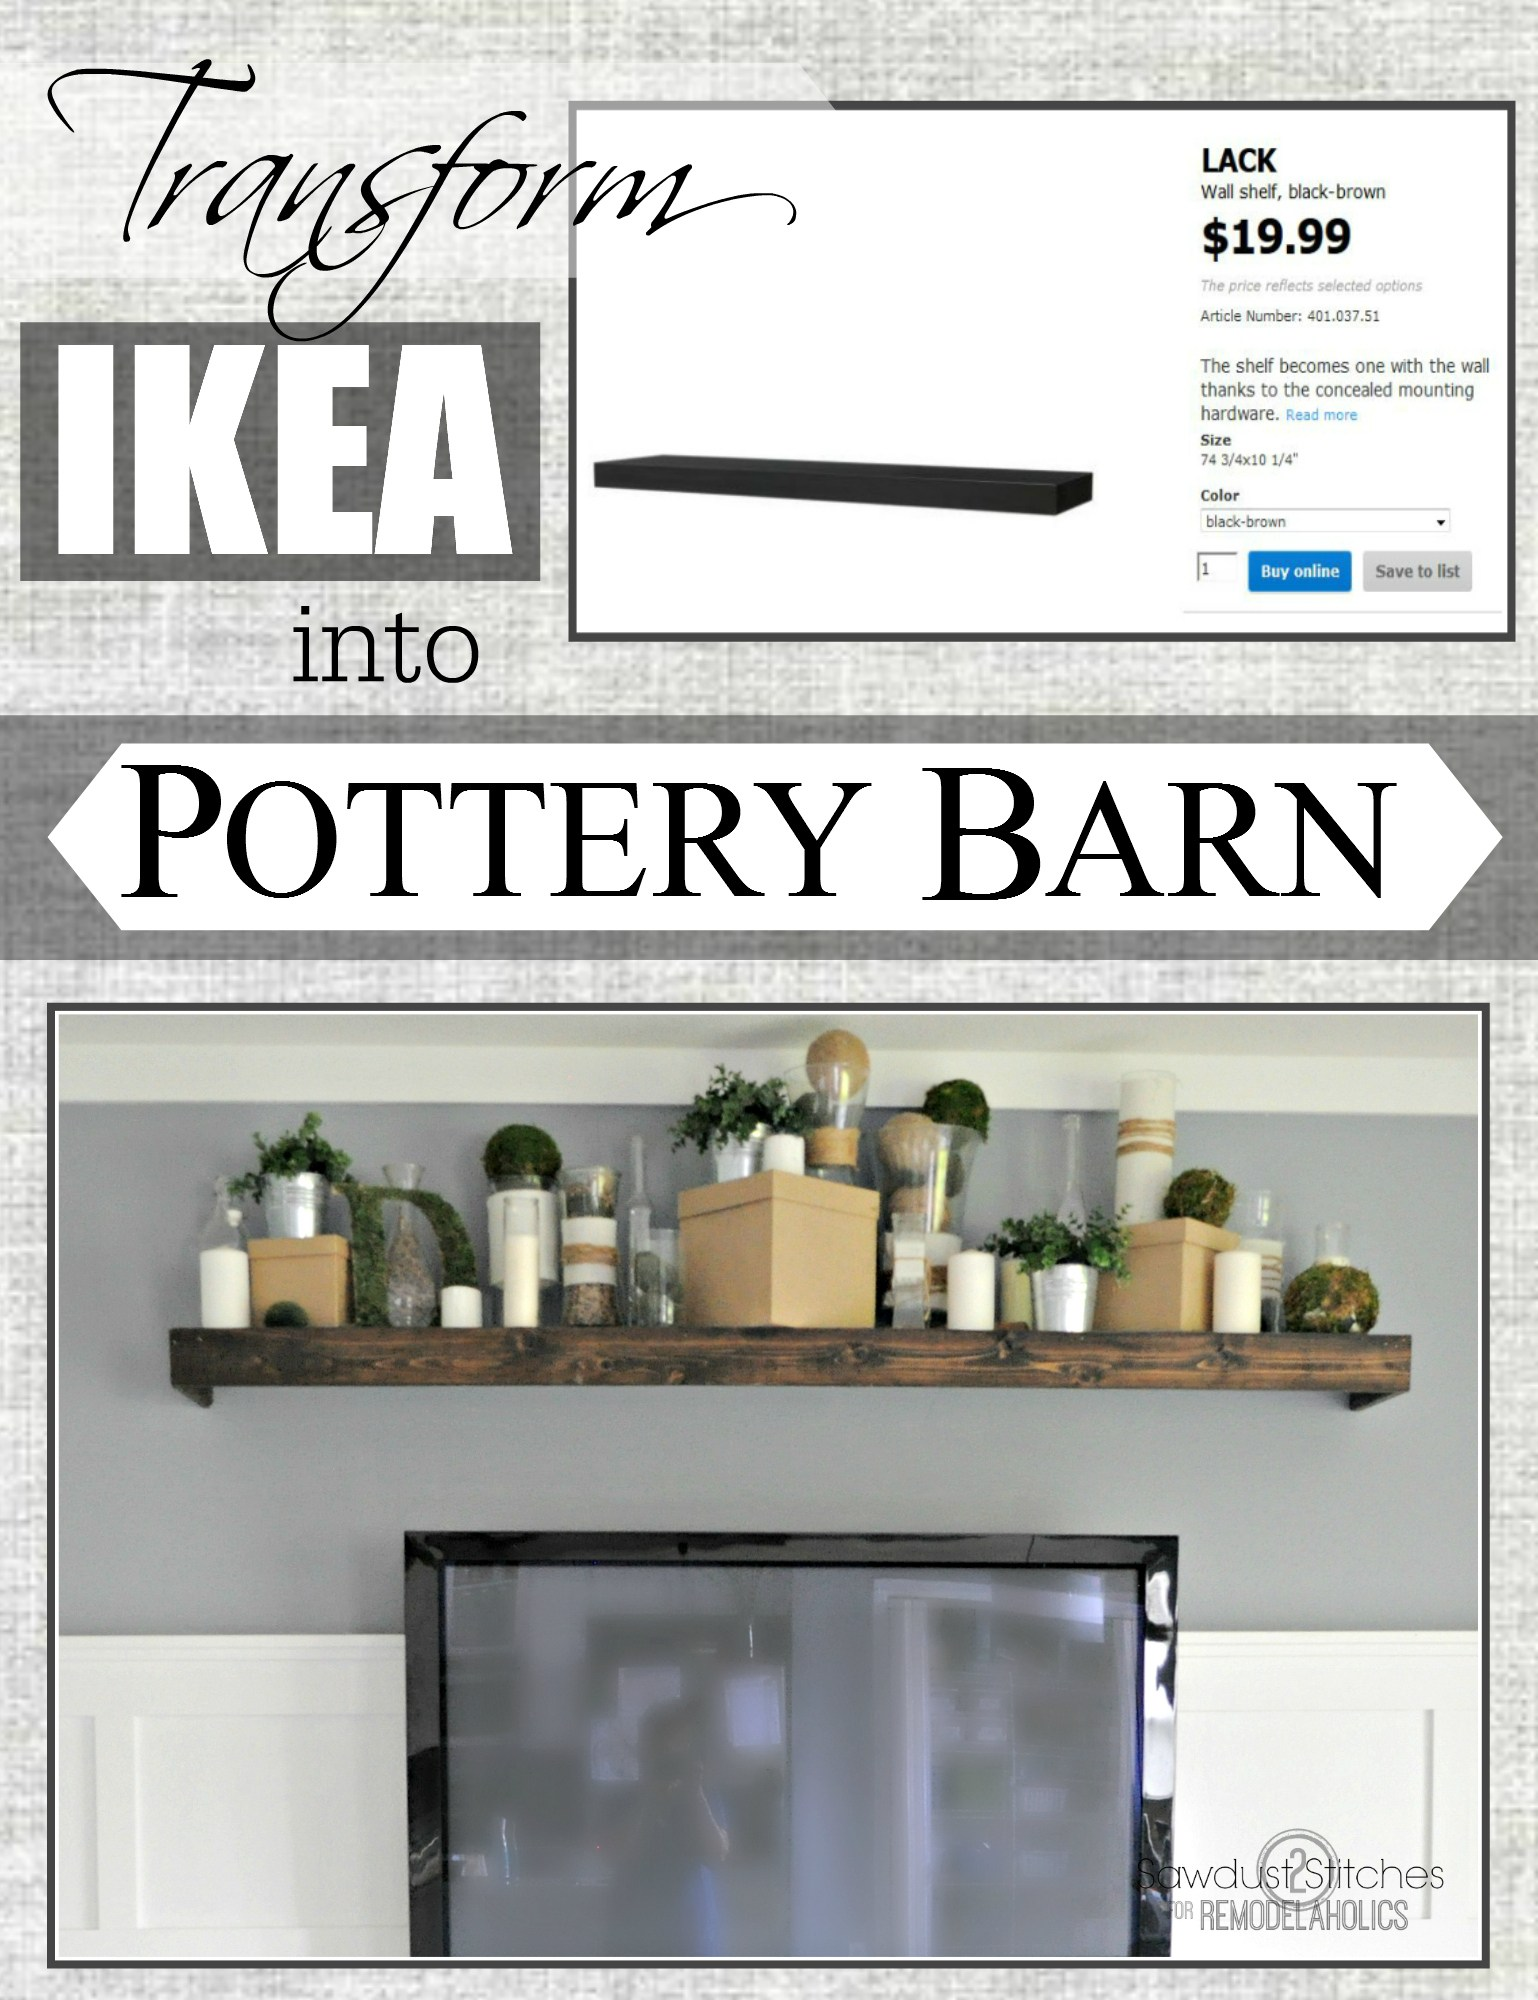 remodelaholic turn ikea shelf into pottery barn ledge makeover floating brackets easily knock off ikeahack hanging shelves granite deep closet organizer kitchen island with